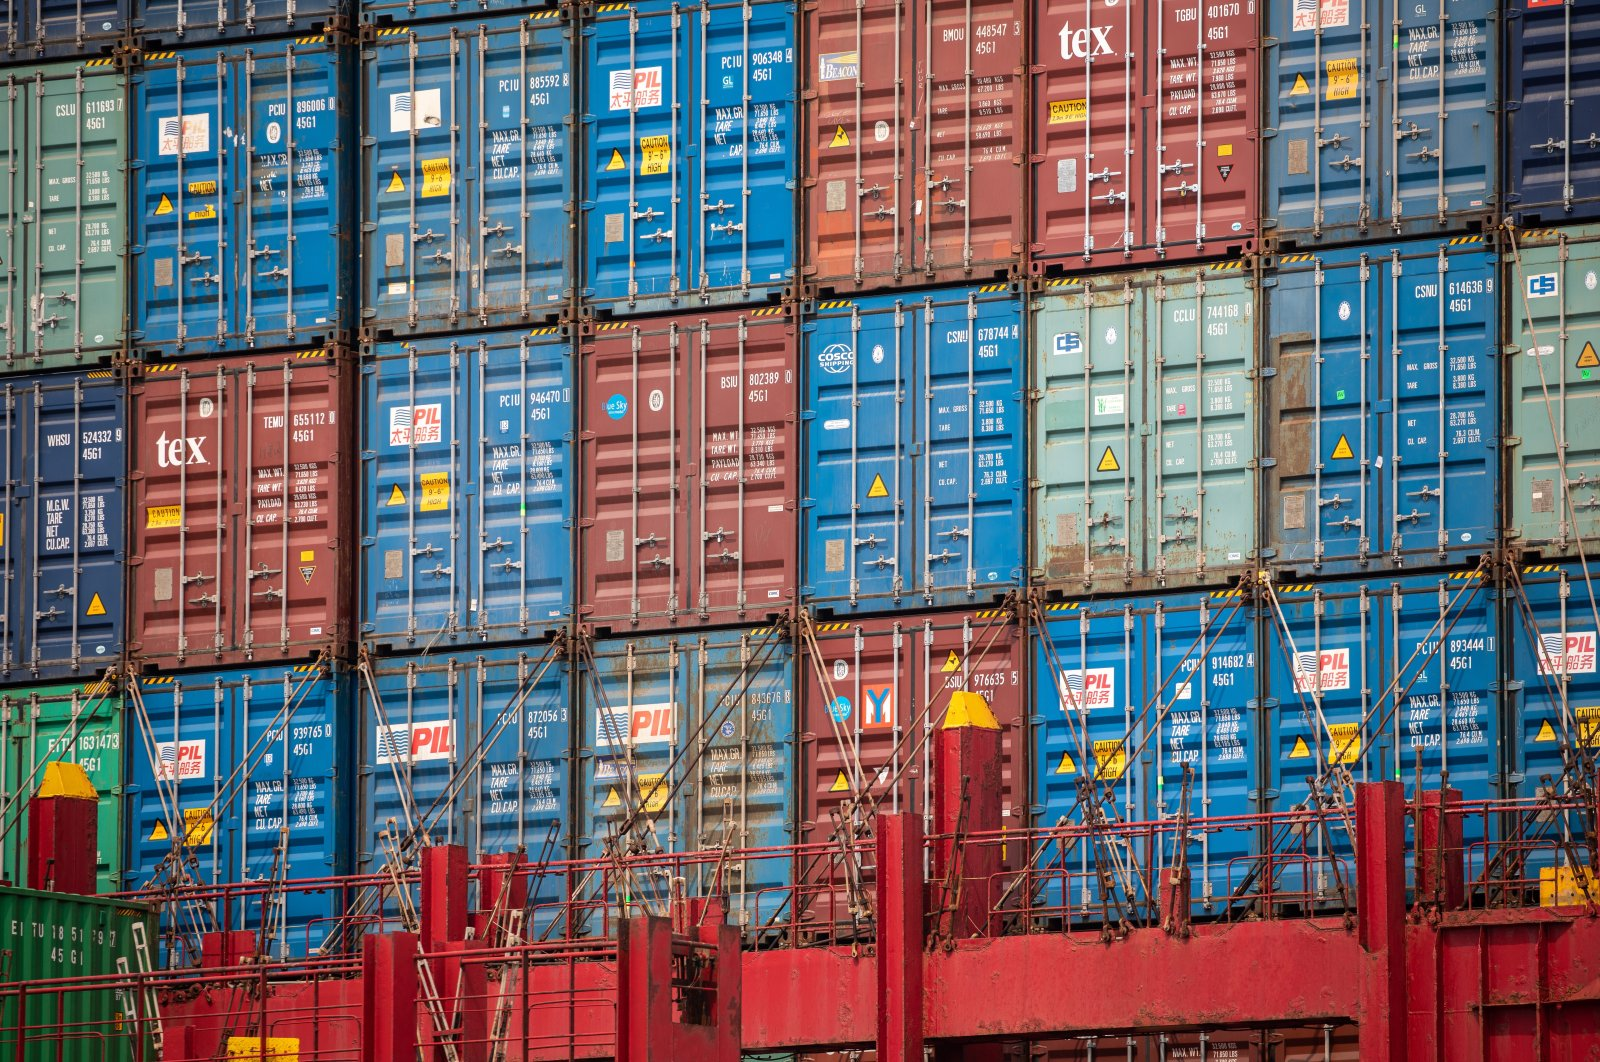 Containers are stacked on a container ship in Kwai Tsing Terminals in Hong Kong, China, March 29, 2021. (EPA Photo)